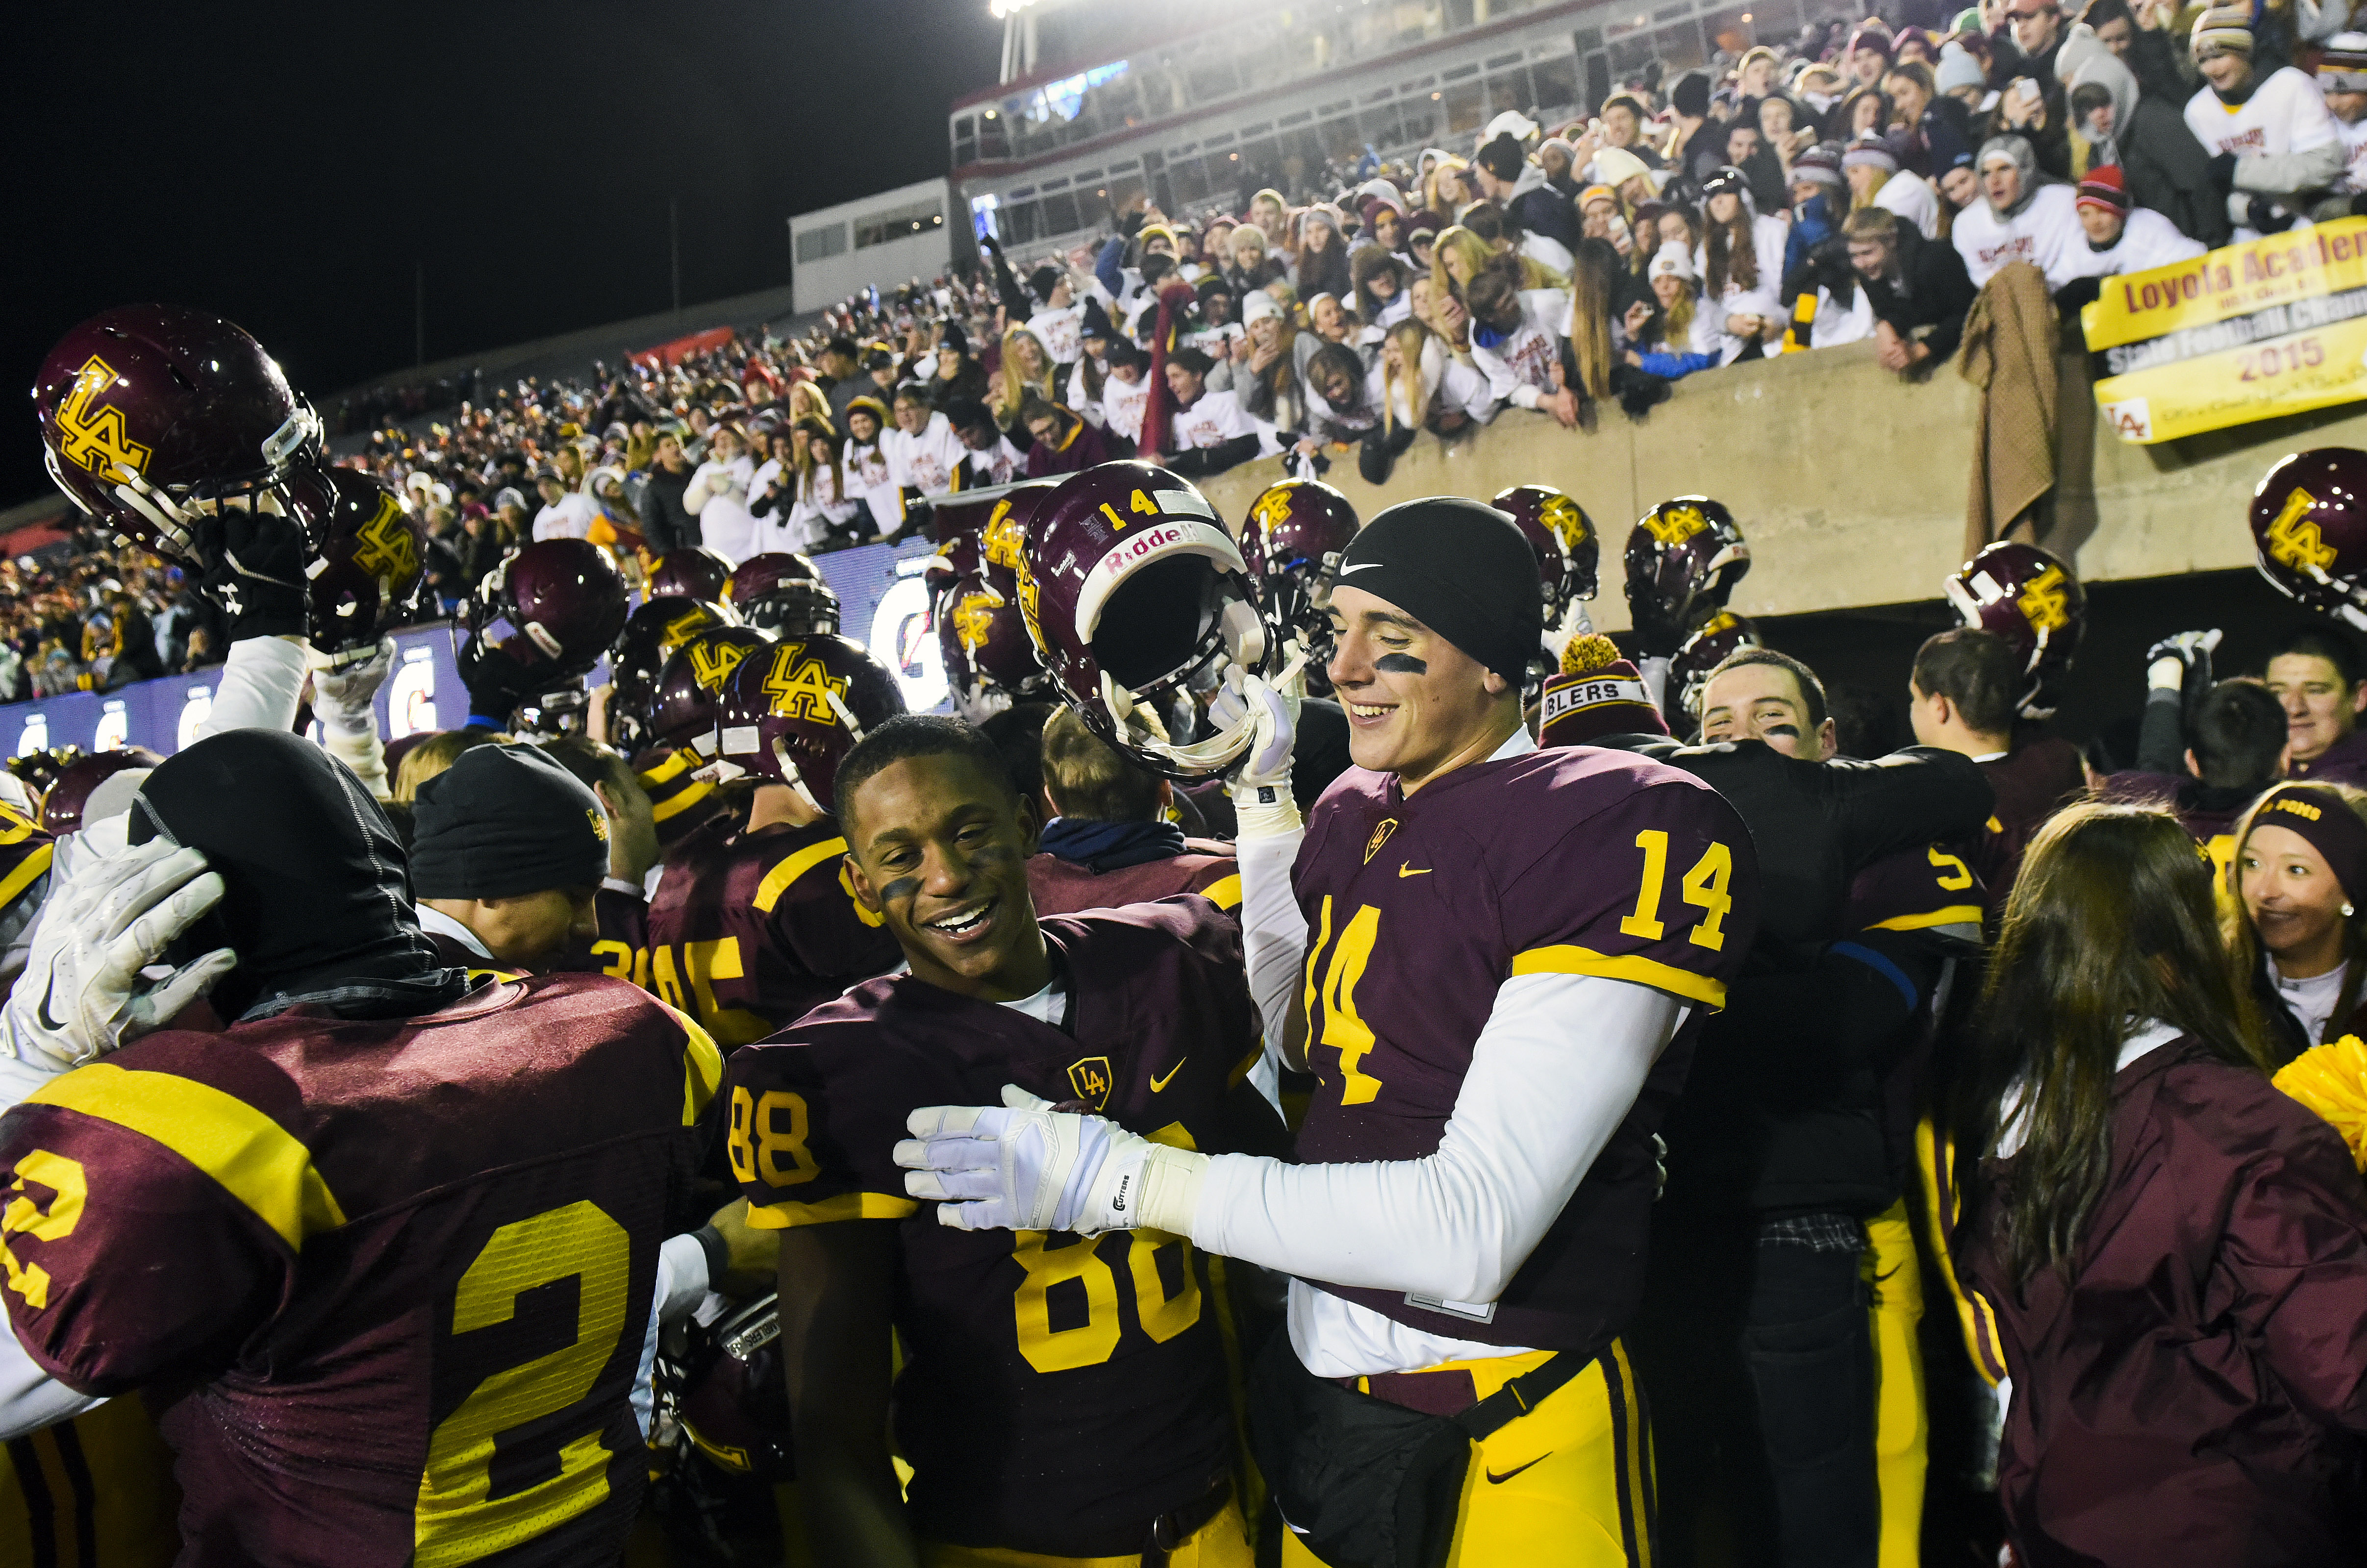 Loyola Academy's Eric Eshoo (88) and Jake Marwede (14) celebrate after beating Marist 41-0 in the IHSA Class 8A high school championship game (Matt Marton, Associated Press)